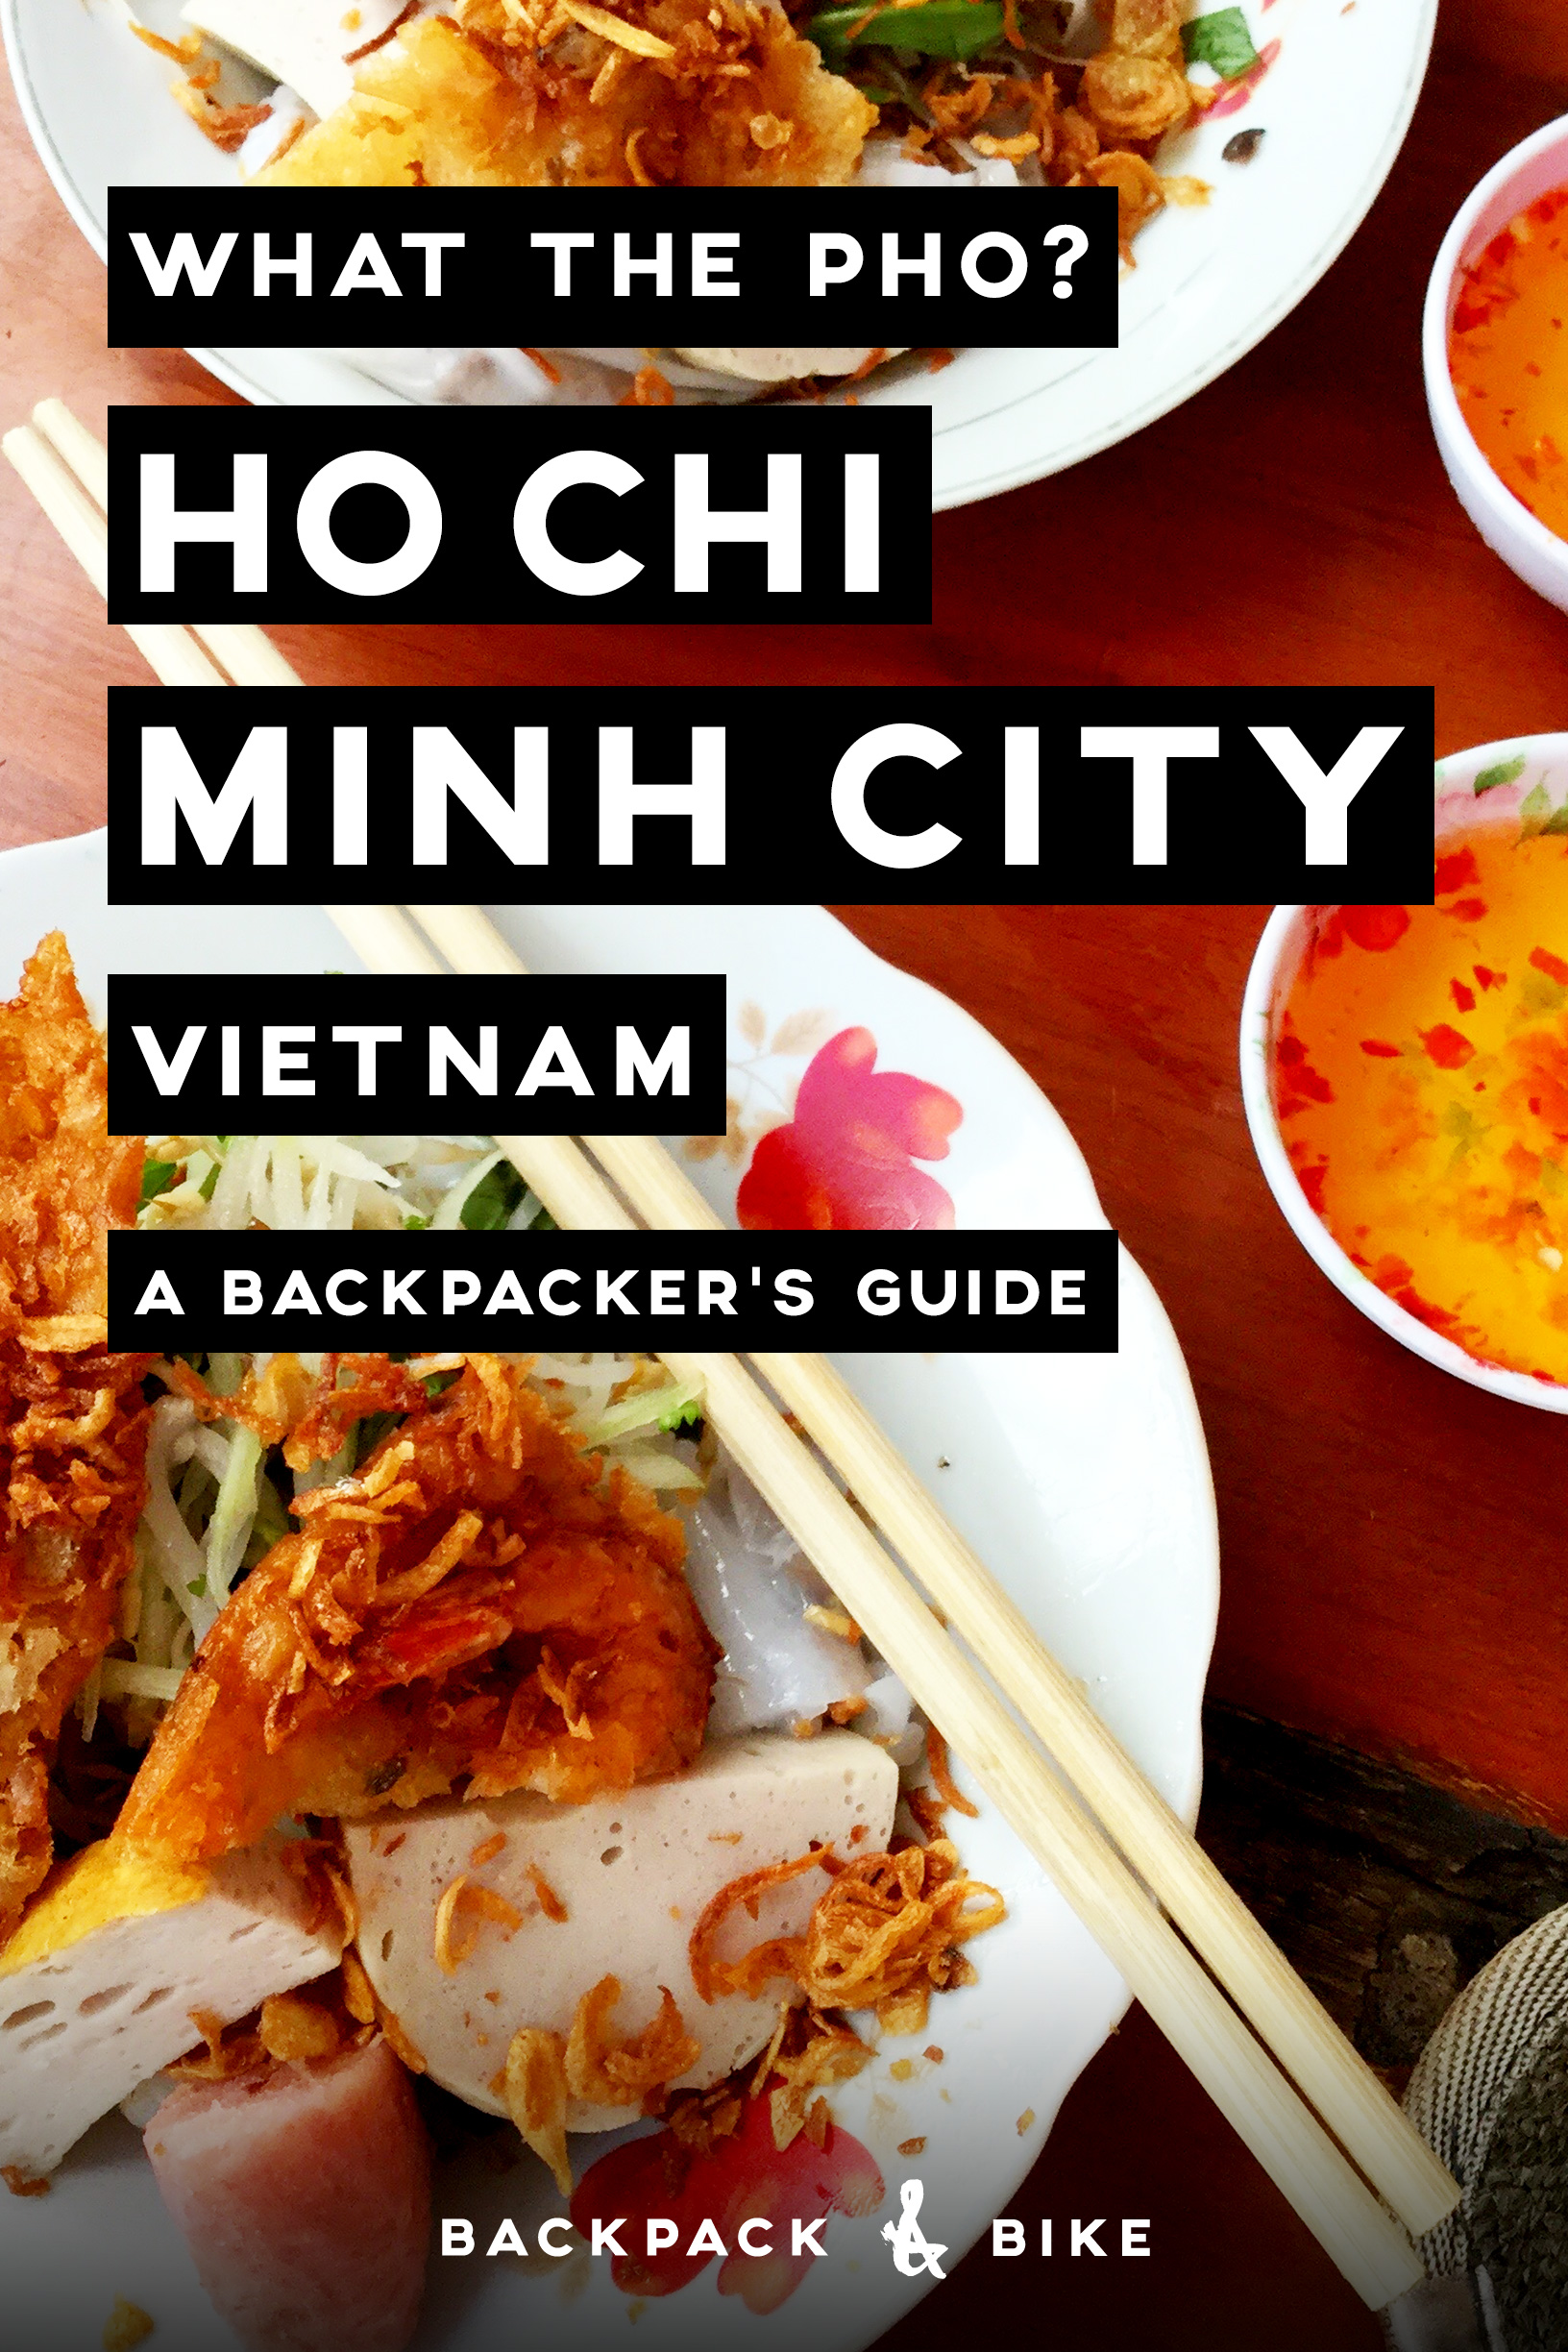 Ho Chi Minh City | What the pho? | A backpacker's guide | What are the must sees, dos, and eats in this busy city? Pin to read later!